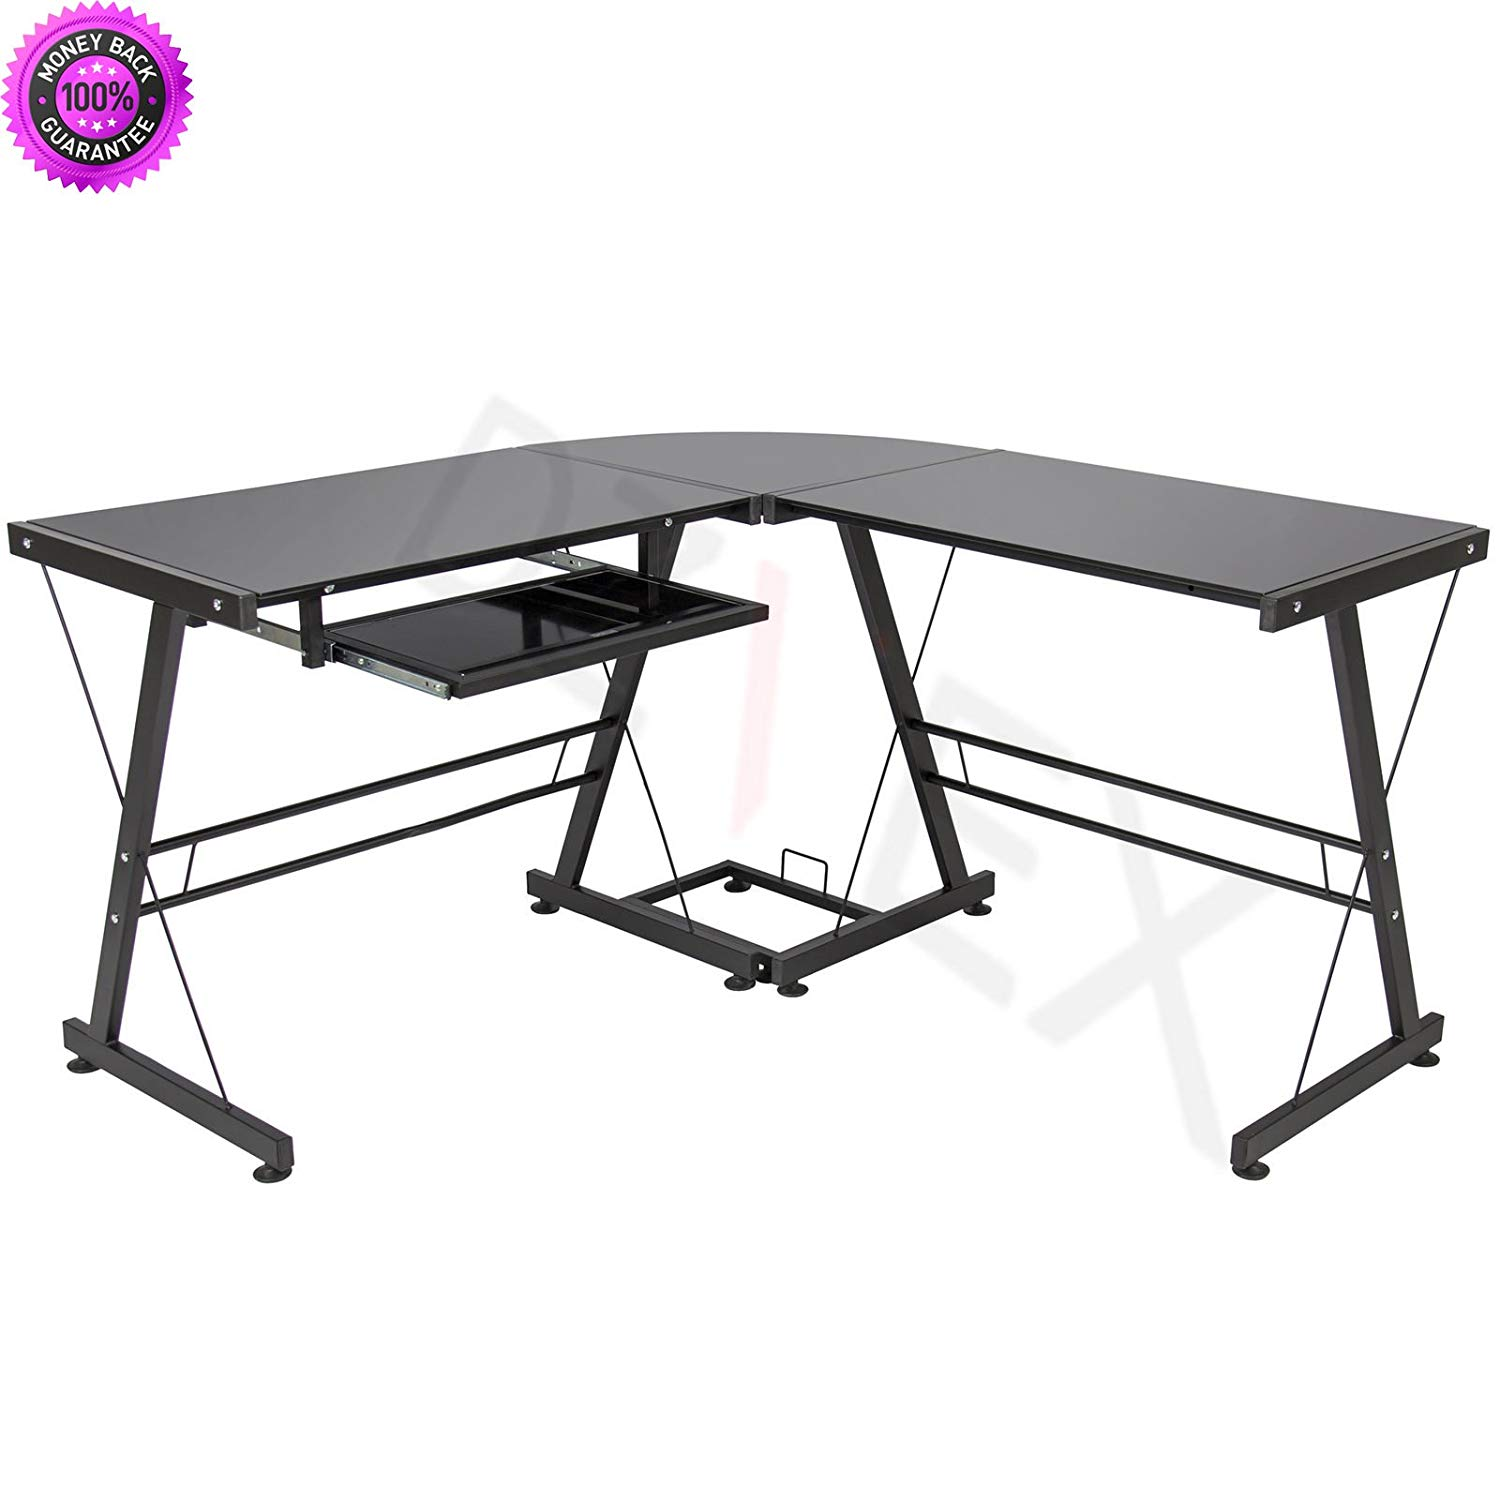 DzVeX_L-Shape Computer Desk PC Glass Laptop Table Workstation Corner Home Office-Black And commercial office furniture home office desk home office furniture collections modular home office